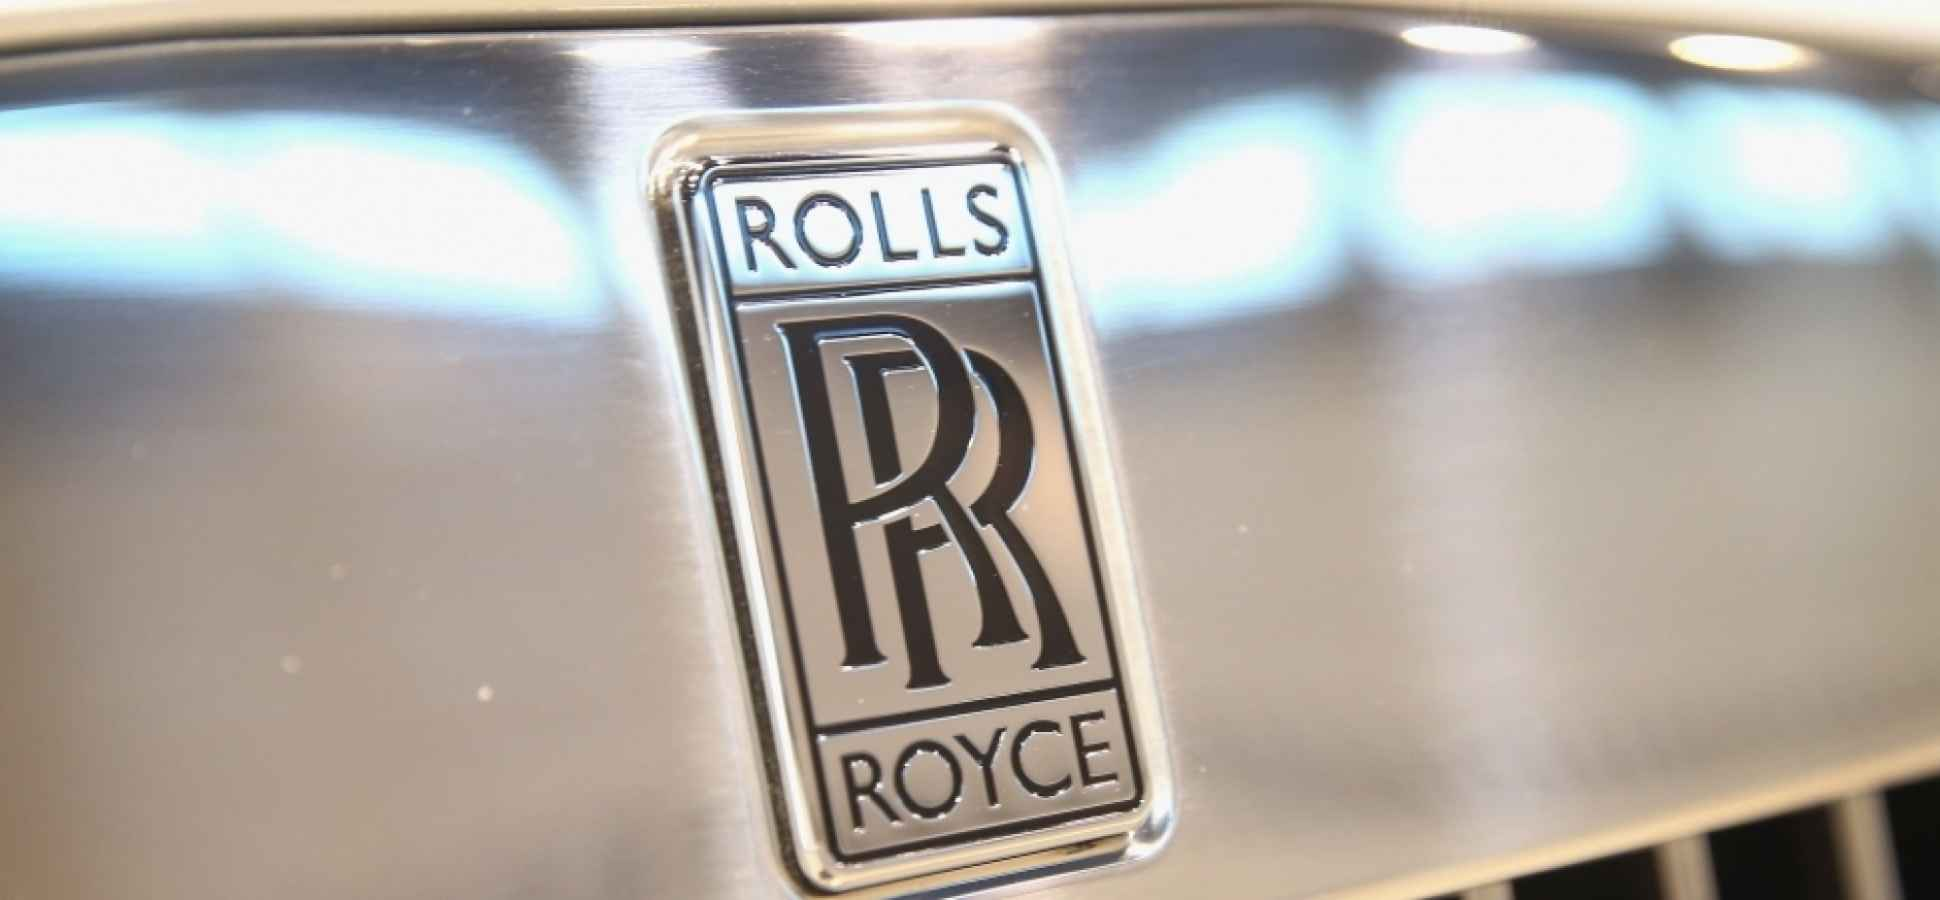 What This Rolls Royce Brand Ambassador Can Teach You About Innovation